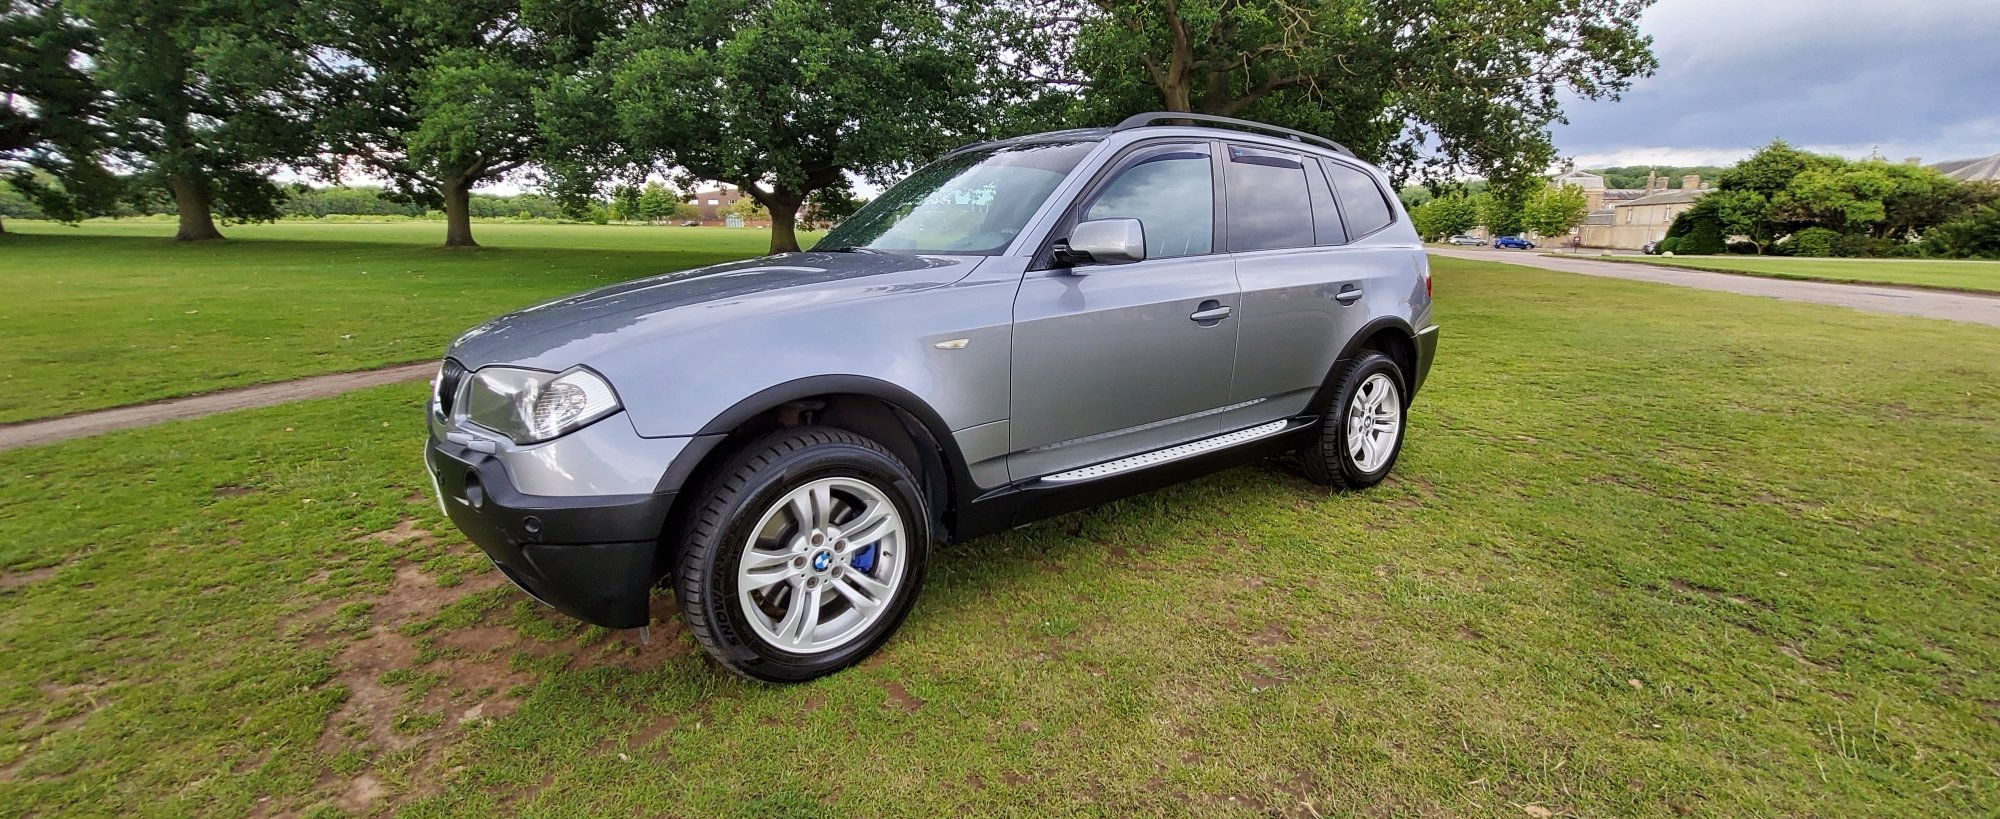 2004 LHD BMW X3, 3.0d Sport 5dr, Auto, Turbo,LEFT HAND DRIVE For Sale (picture 3 of 6)